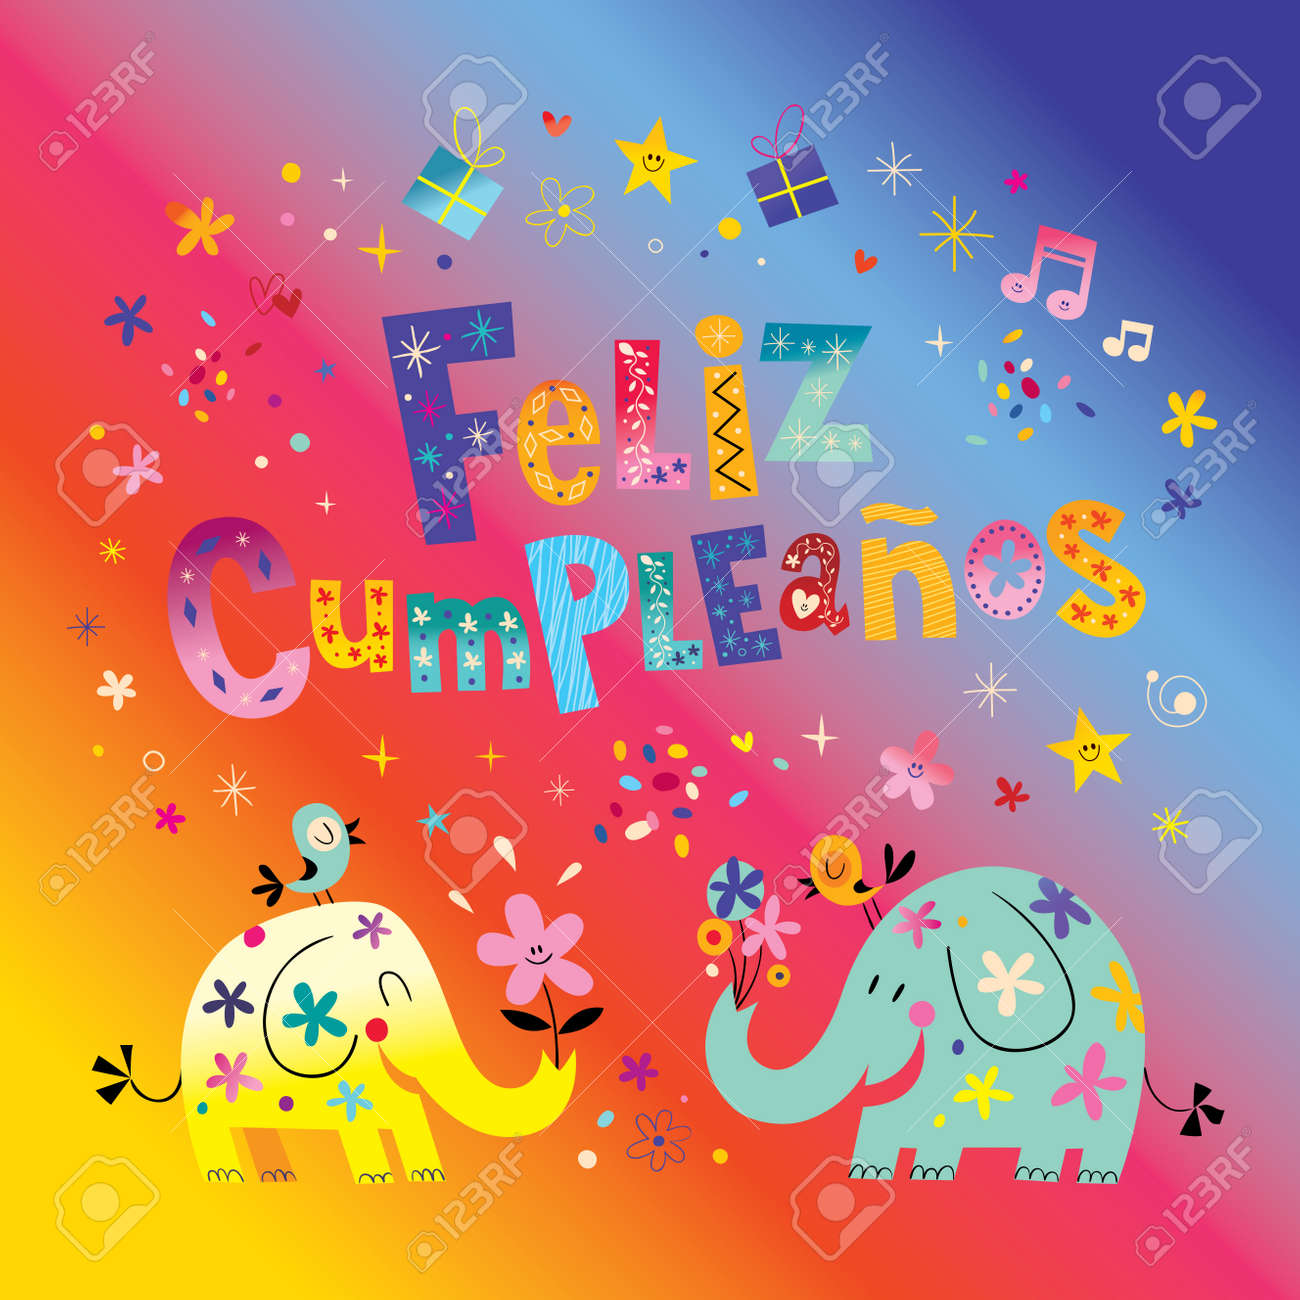 Buy Birthday Happy in spanish pictures trends